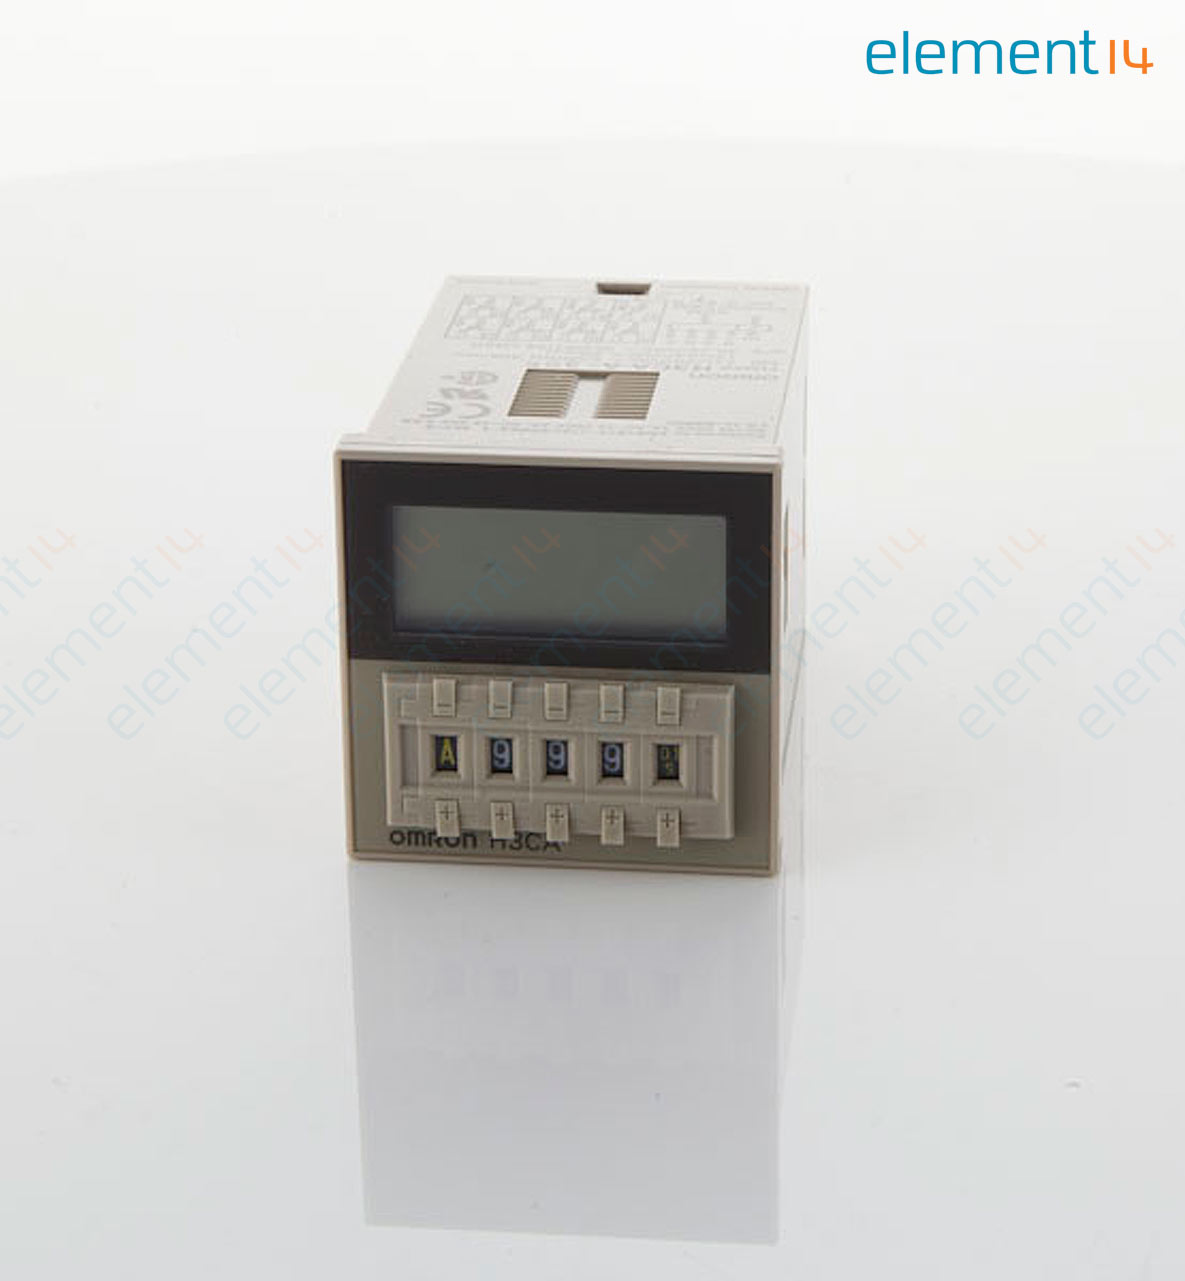 H3caa306 Omron Timer H3ca Series 7 Ranges Circuit Breaker Interface Units Add To Compare